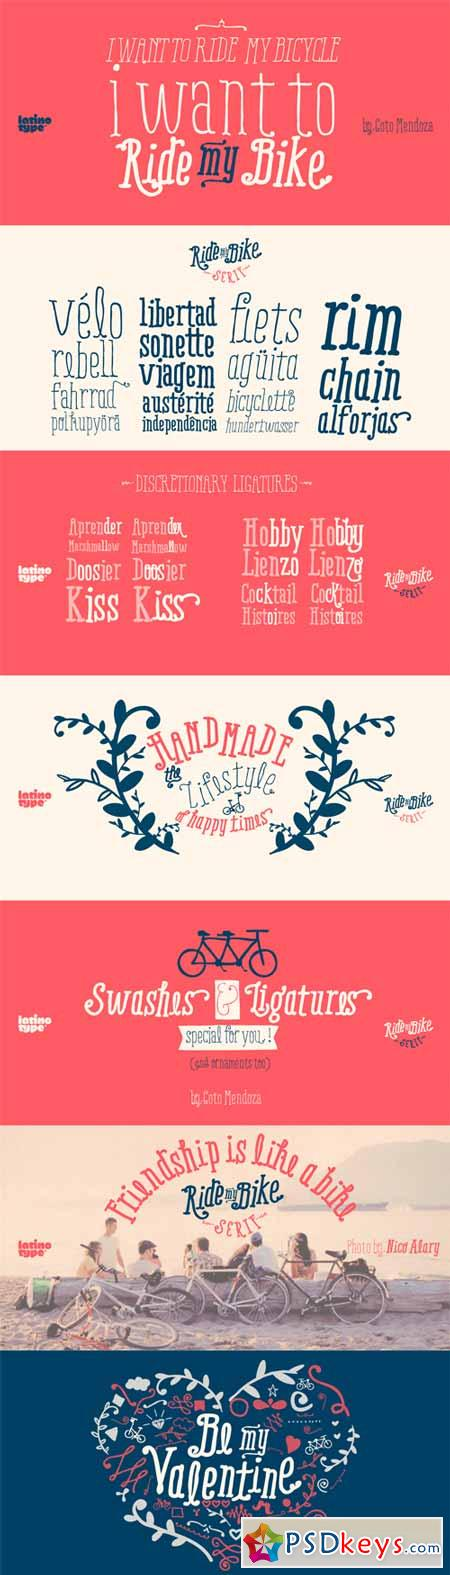 Ride my Bike Serif Font Family - 5 Fonts for $129